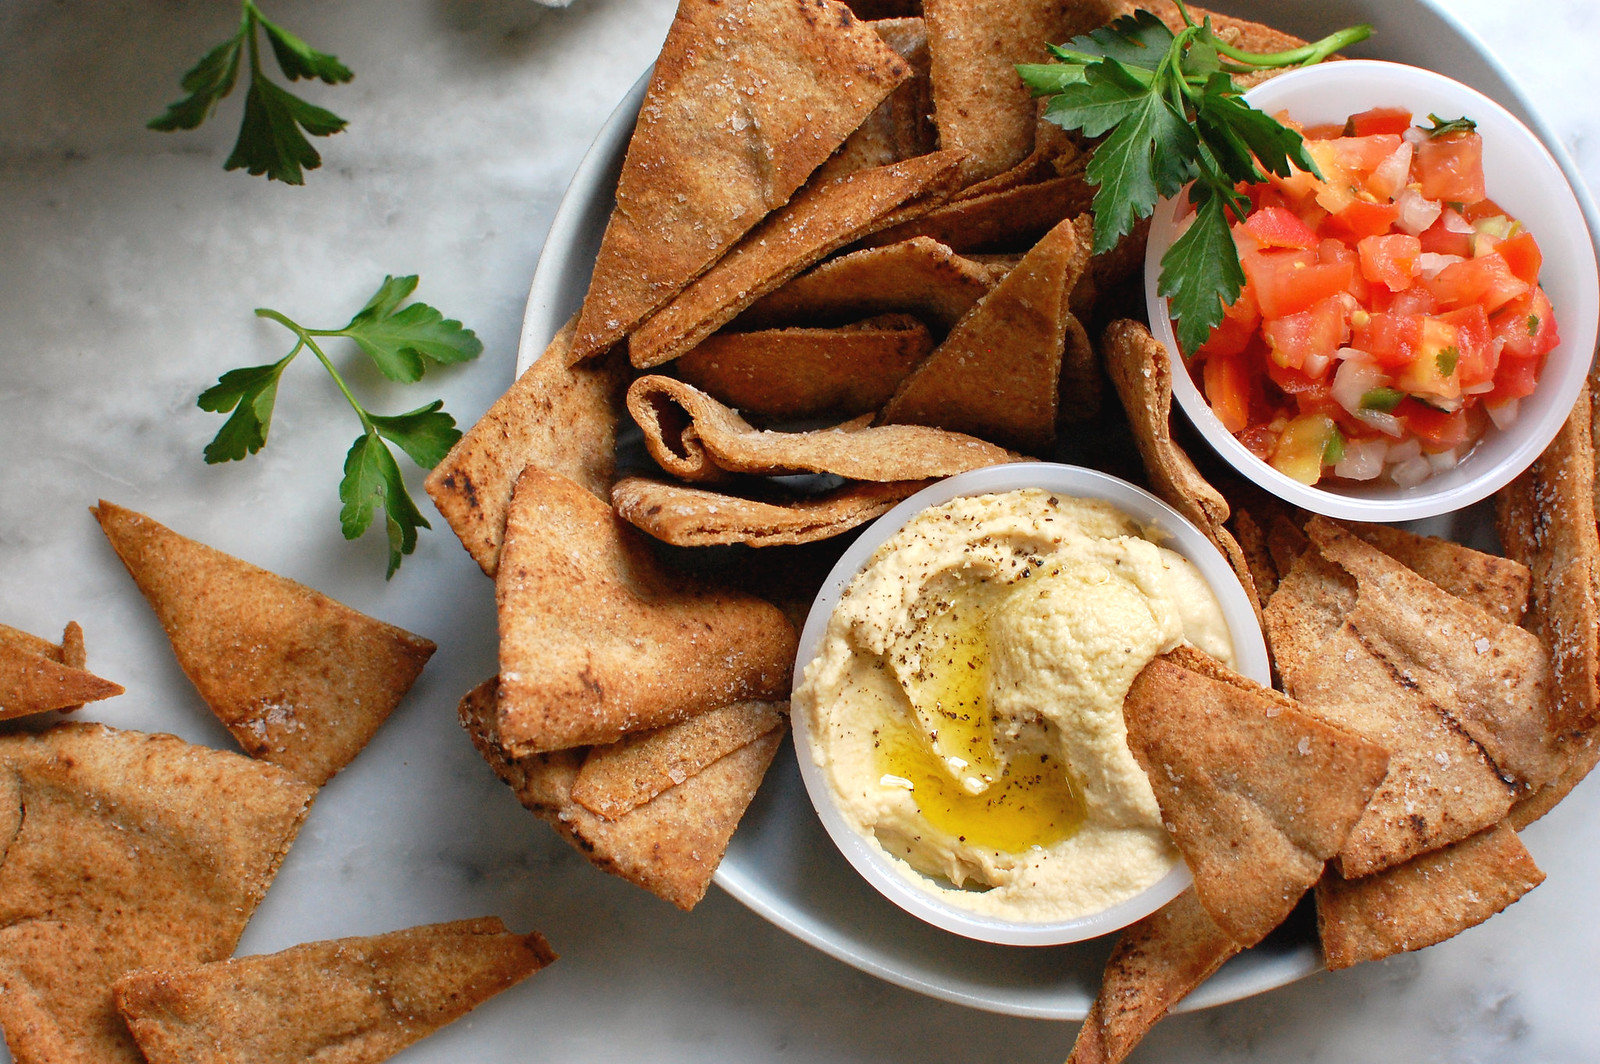 platter of homemade Stacy's pita chips with salsa and hummus